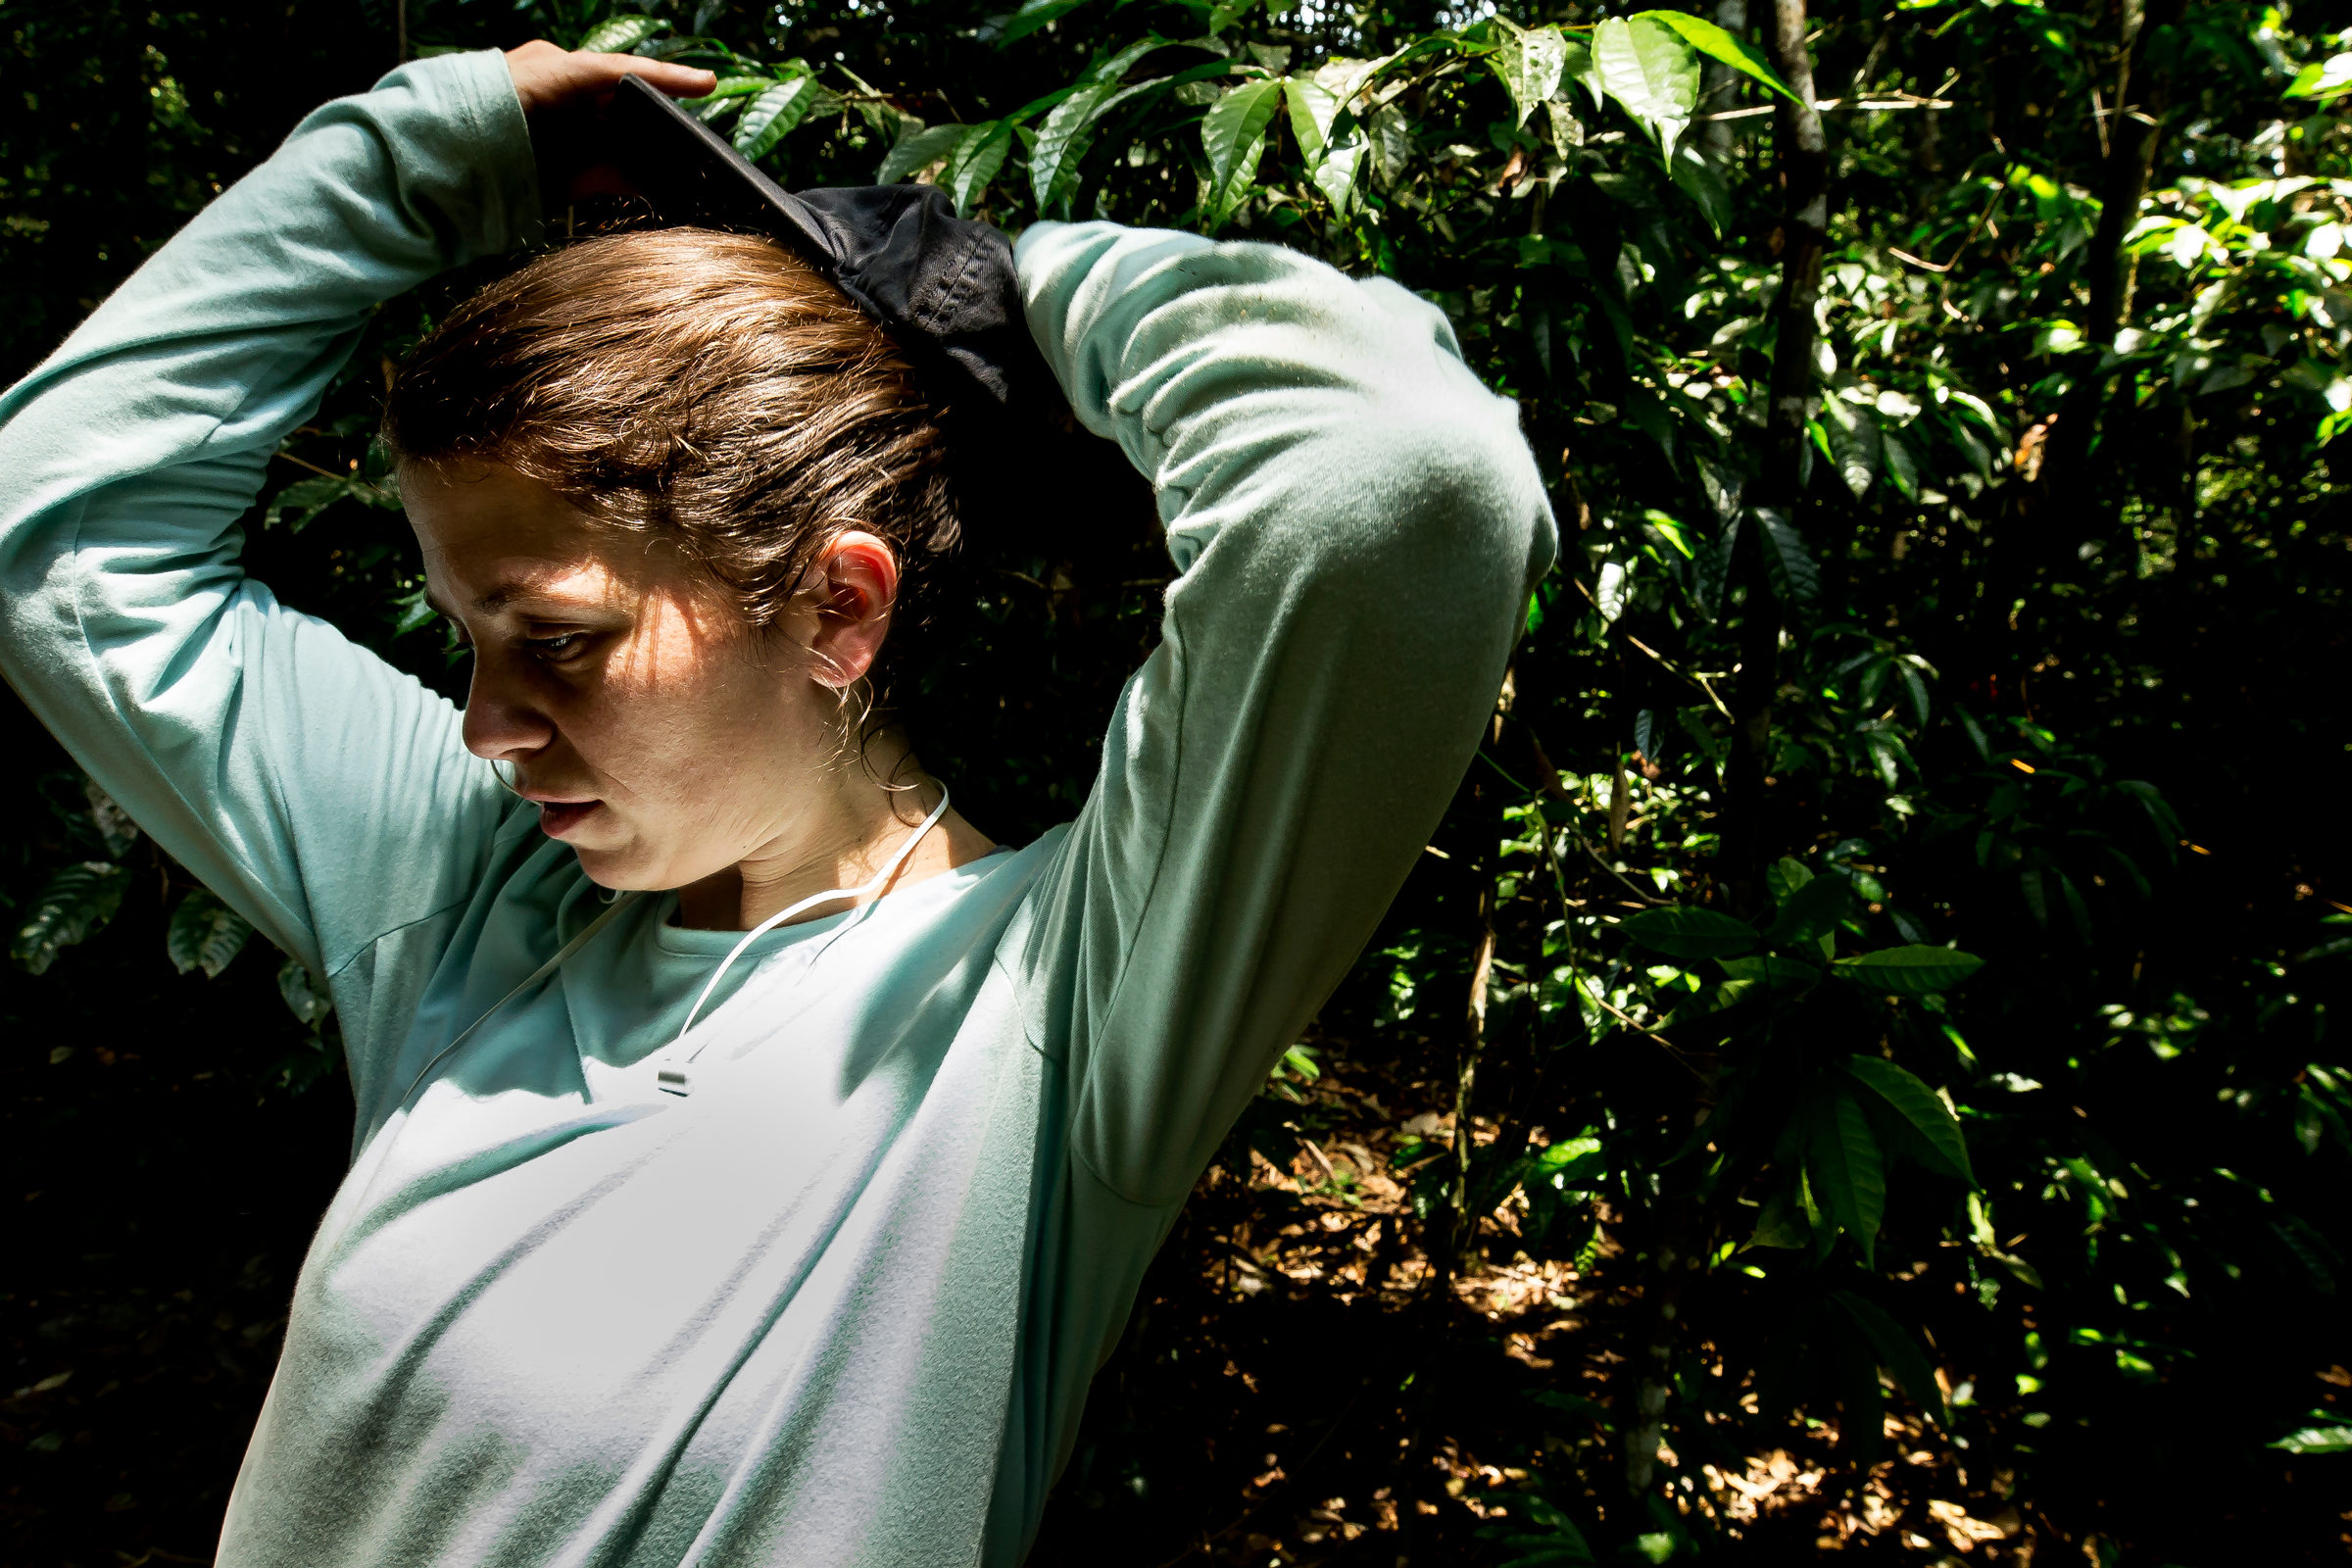 Elizabeth Agee in the Amazon rainforest.